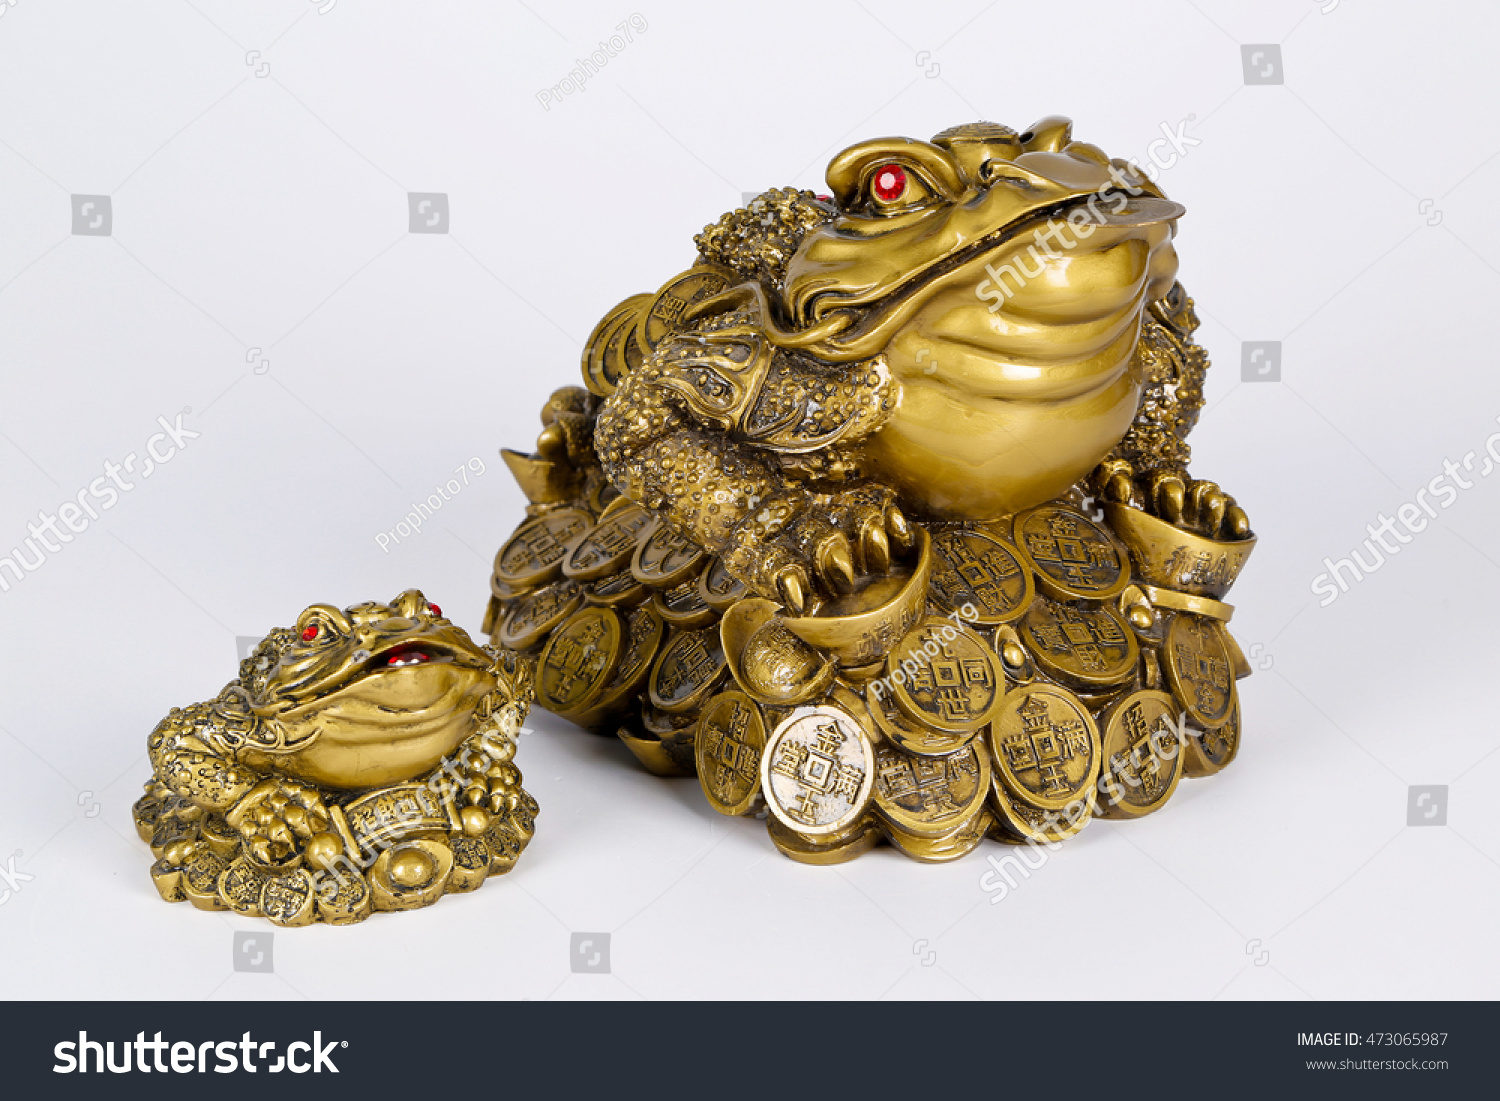 Royalty Free Good Luck Frog The Frog As A Lucky 473065987 Stock